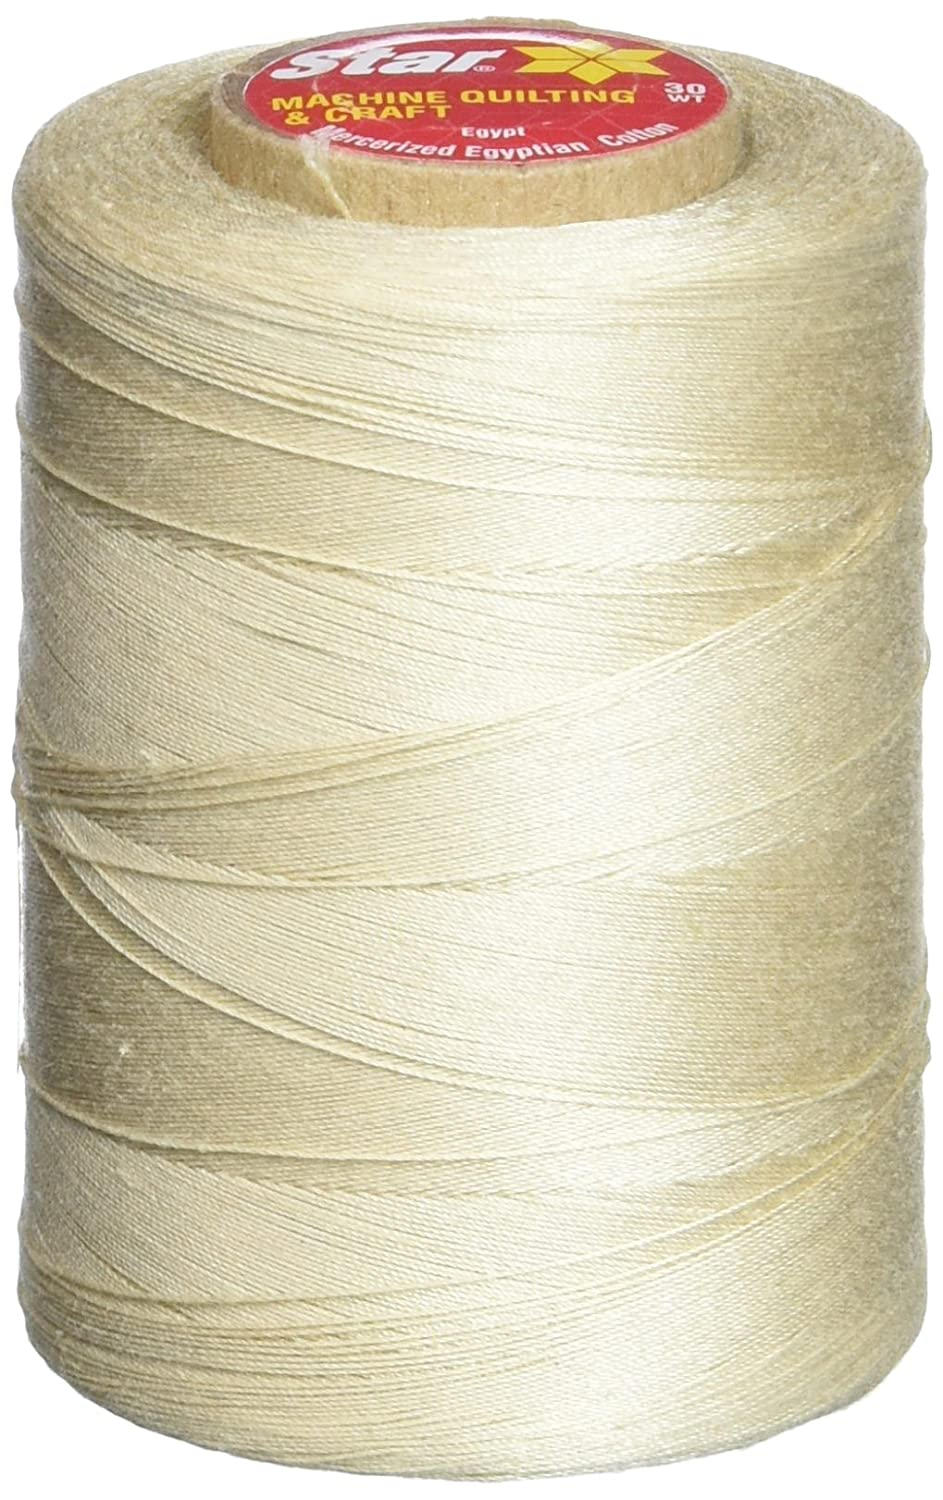 Star Thread V37-016 3-Ply 30wt T-35 Cotton Quilting & Craft Thread, 1200 yd, Ecru Notions - In Network